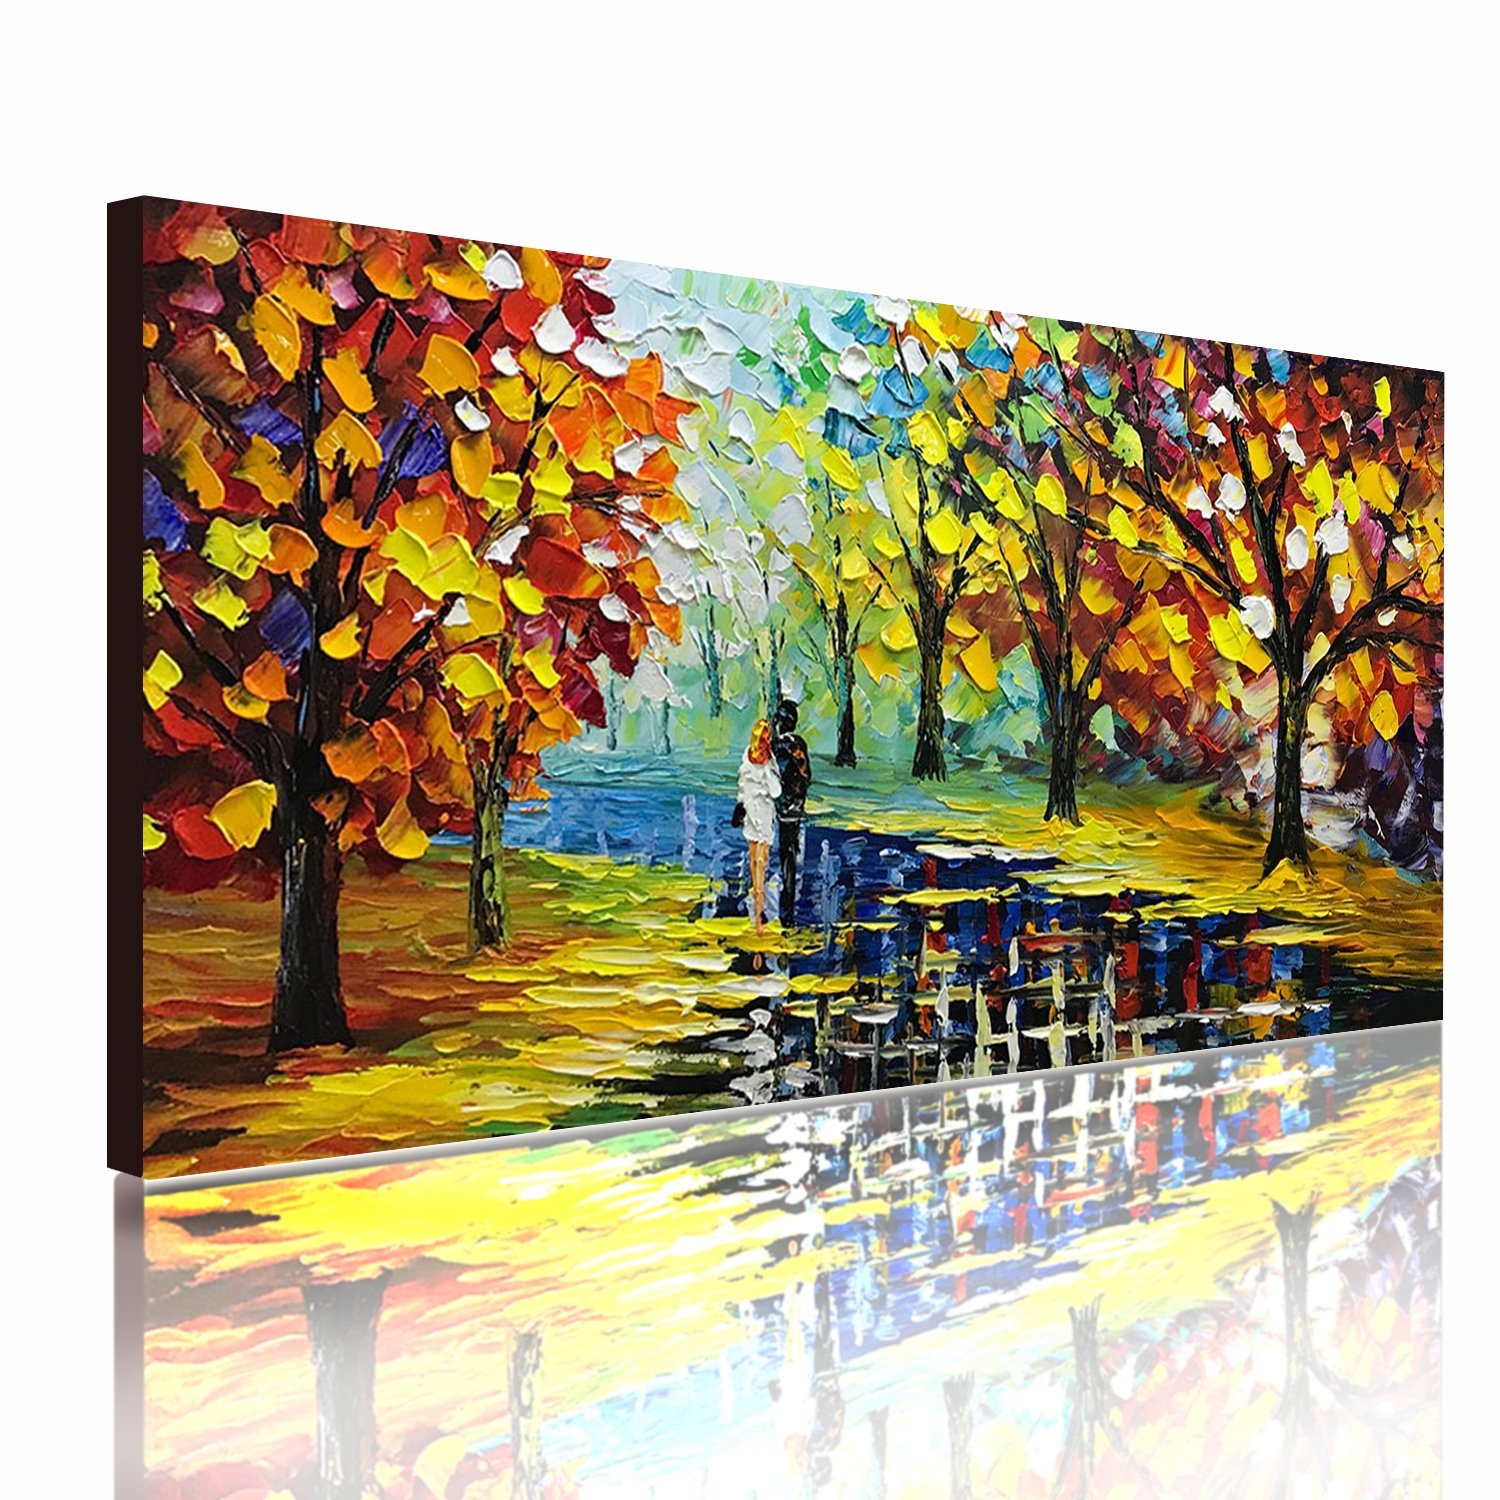 Fasdi-ART Paintings, 24x48 Inch Paintings, Love in the Forest Oil Hand Painting Painting 3D Hand-Painted On Canvas Abstract Artwork Art Wood Inside Framed Hanging Wall Decoration Abstract Painting by Fasdi-ART (Image #2)